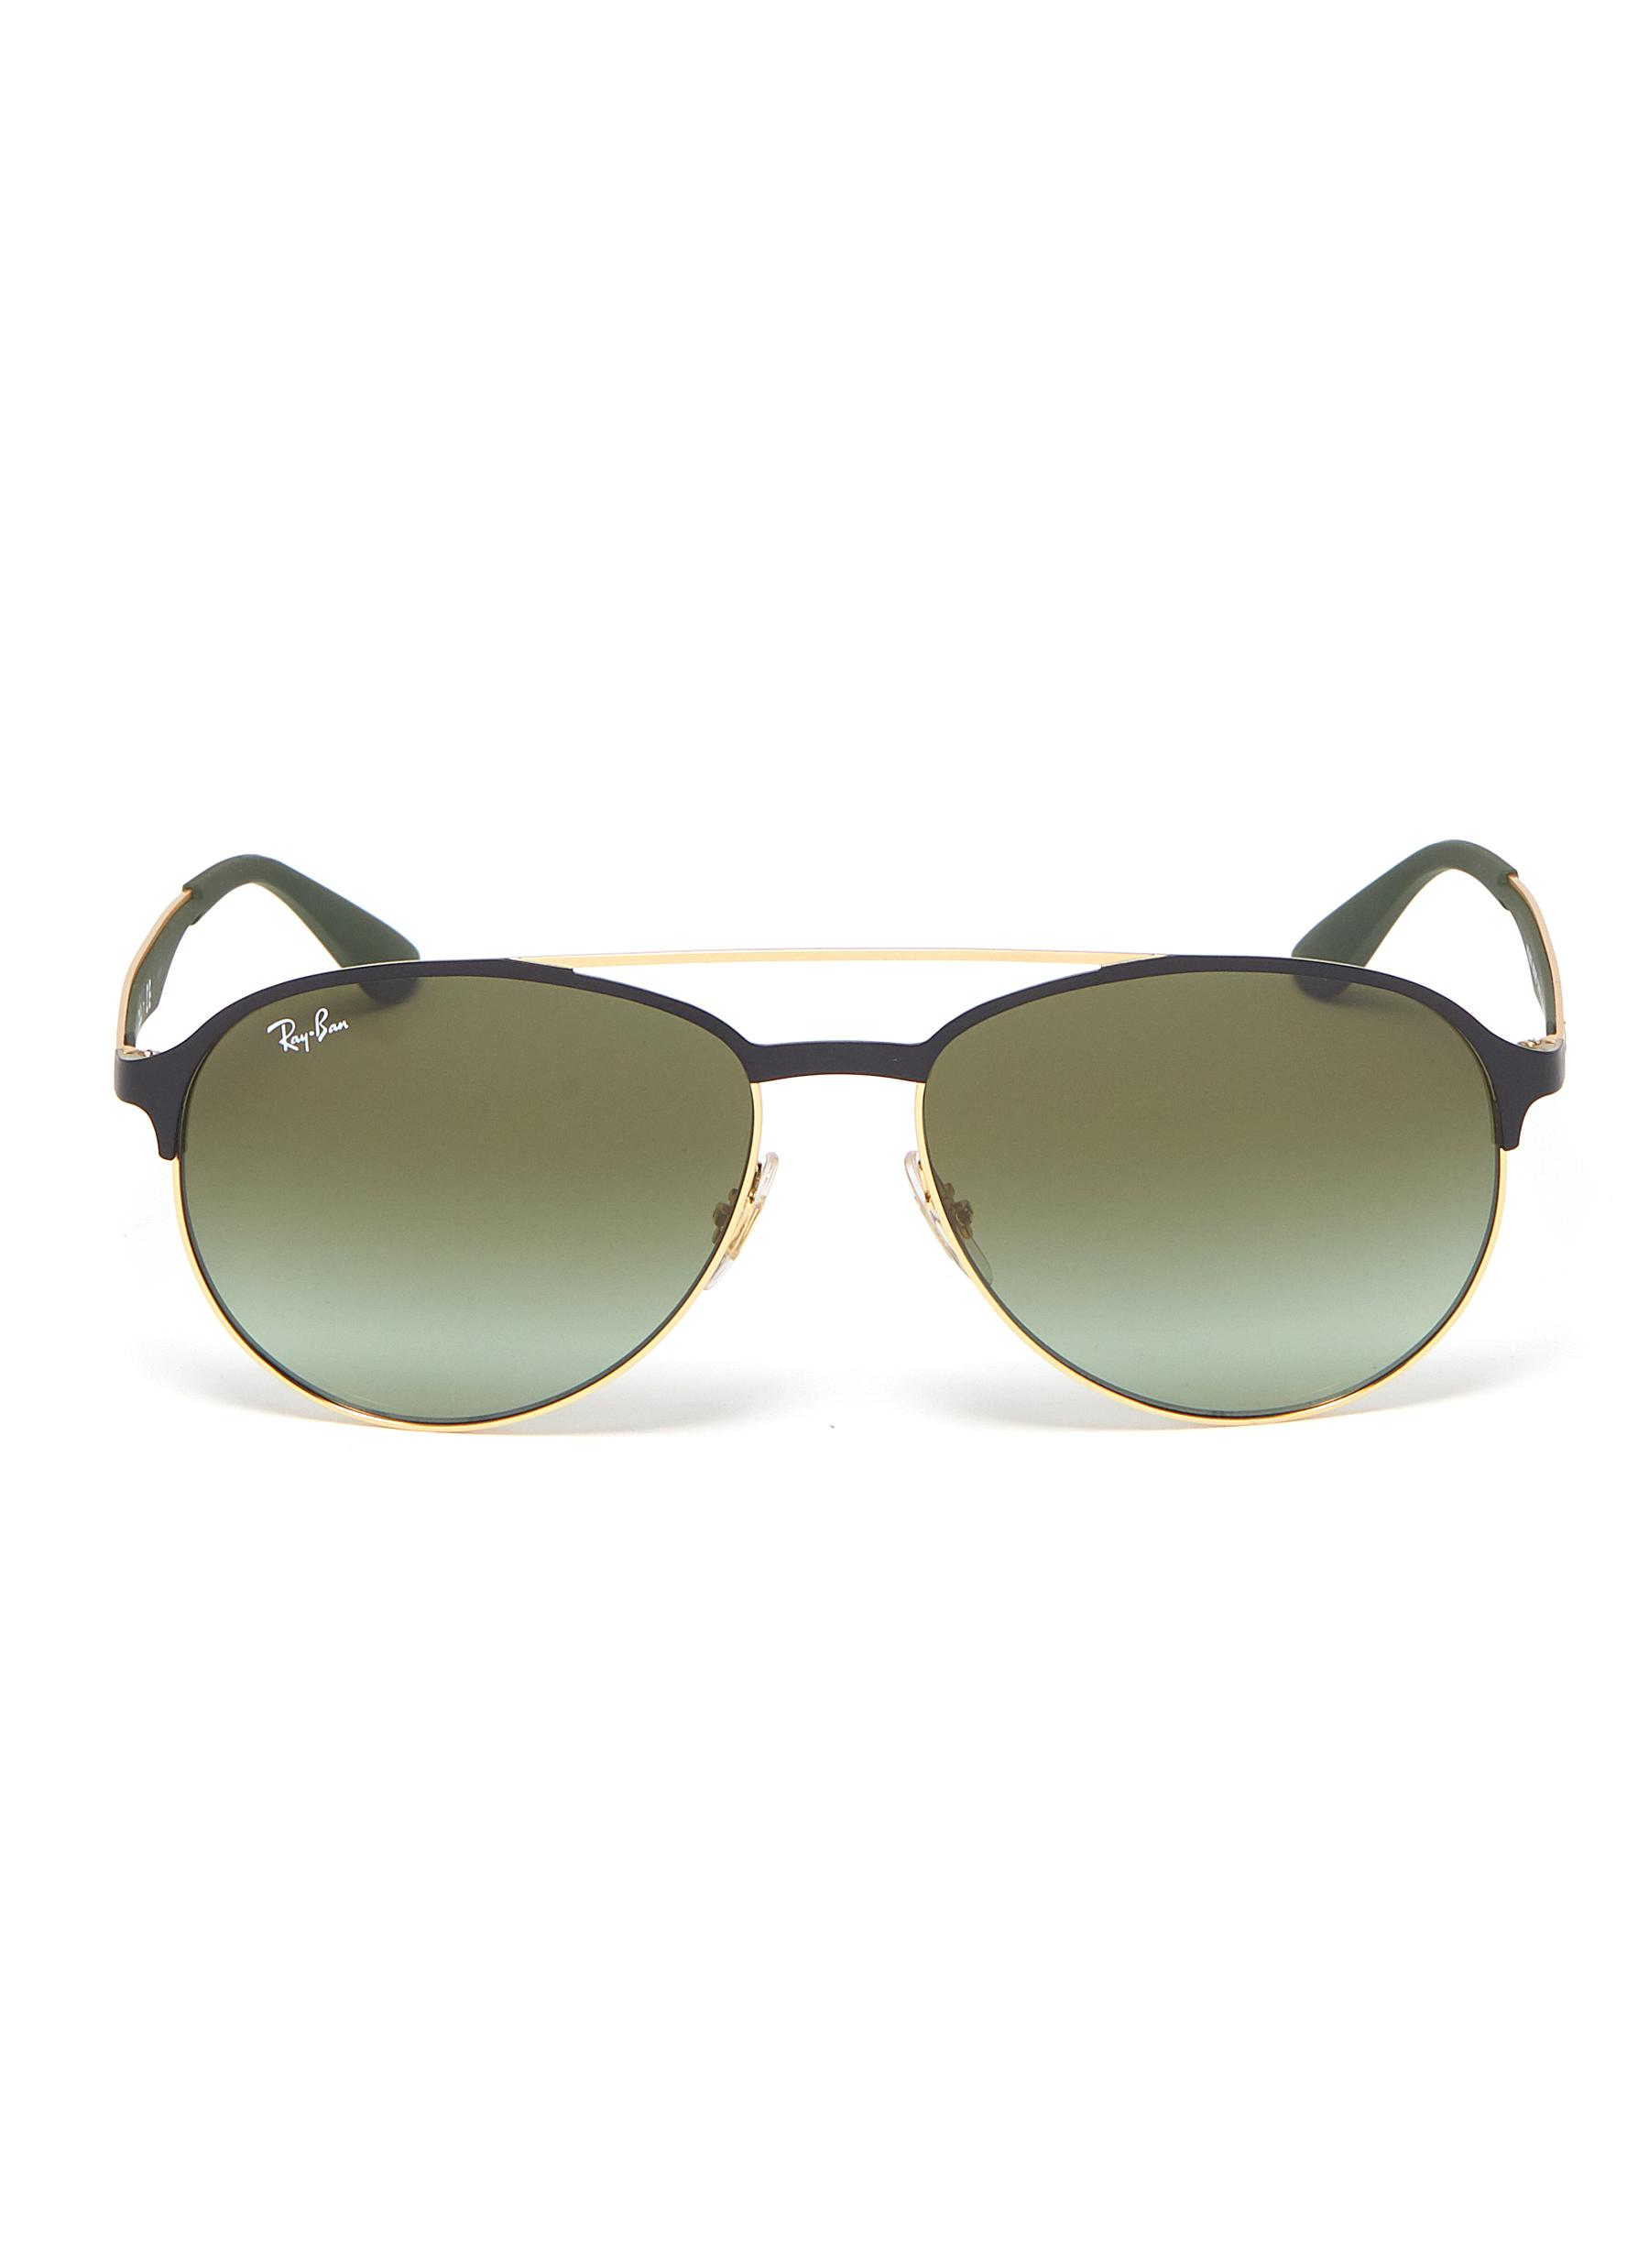 142cf851e45 Main View - Click To Enlarge - Ray-Ban -  RB3606  metal aviator